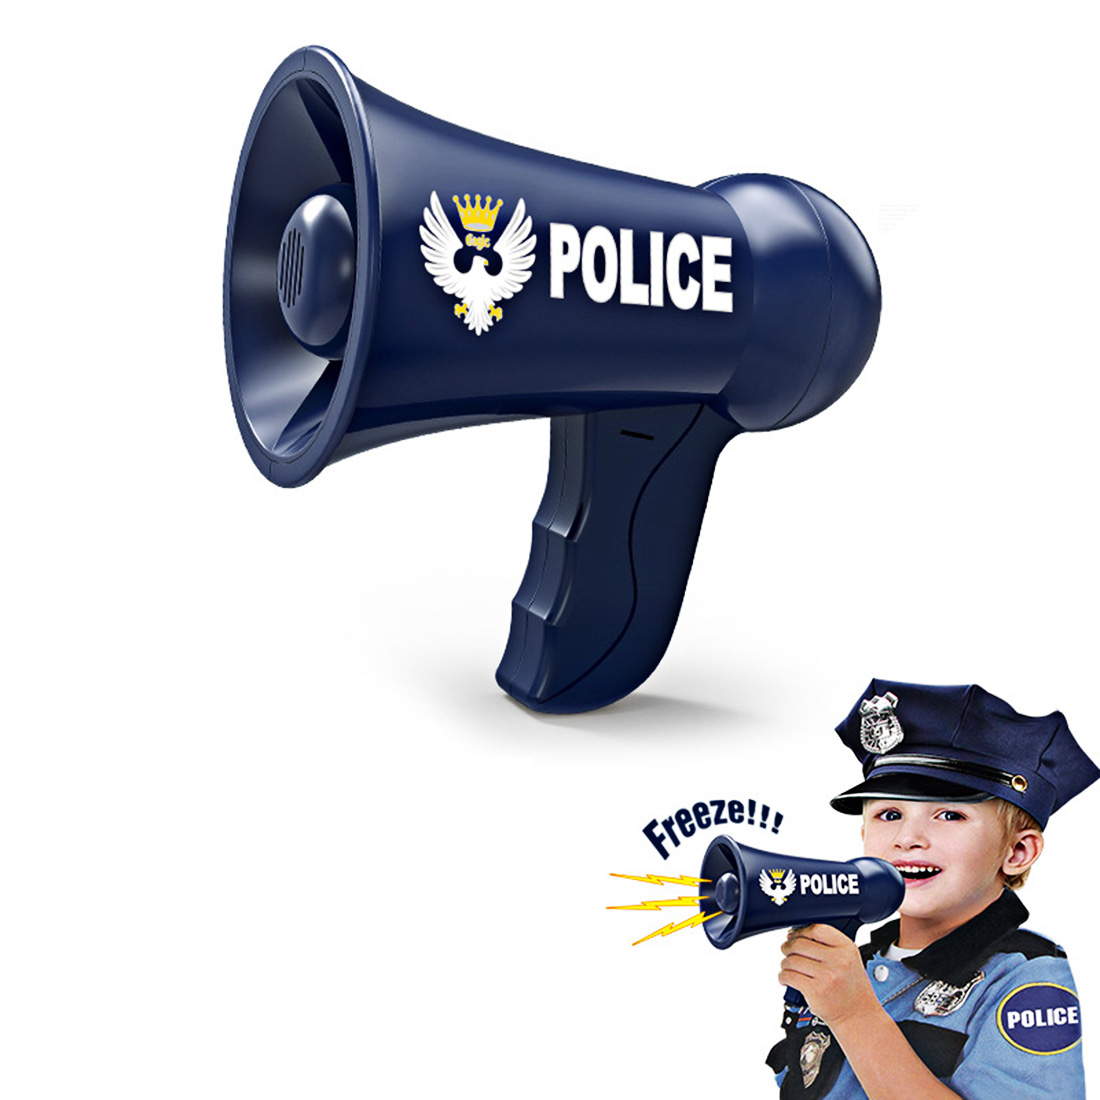 Surwish Children Role Play Toy Battery Powered Police Megaphone Police Play Set Fro Kids Children New 2019